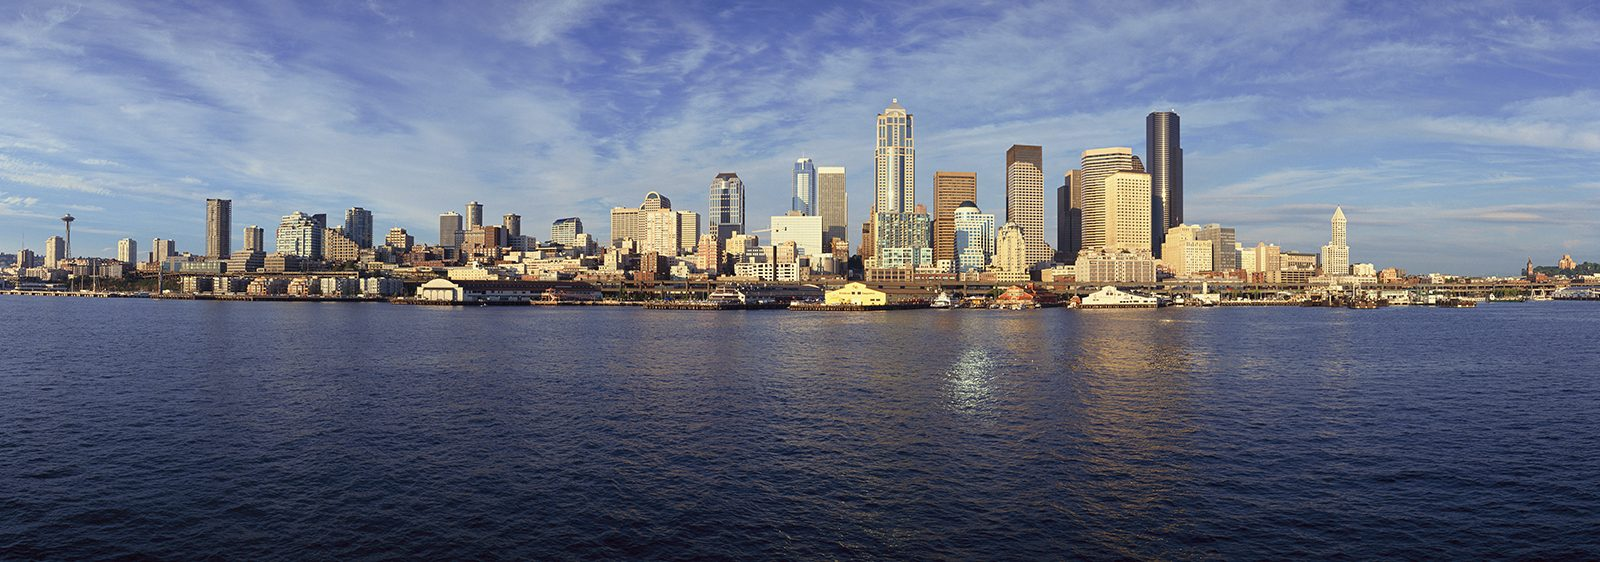 Seattle, Washington skyline from Puget Sound